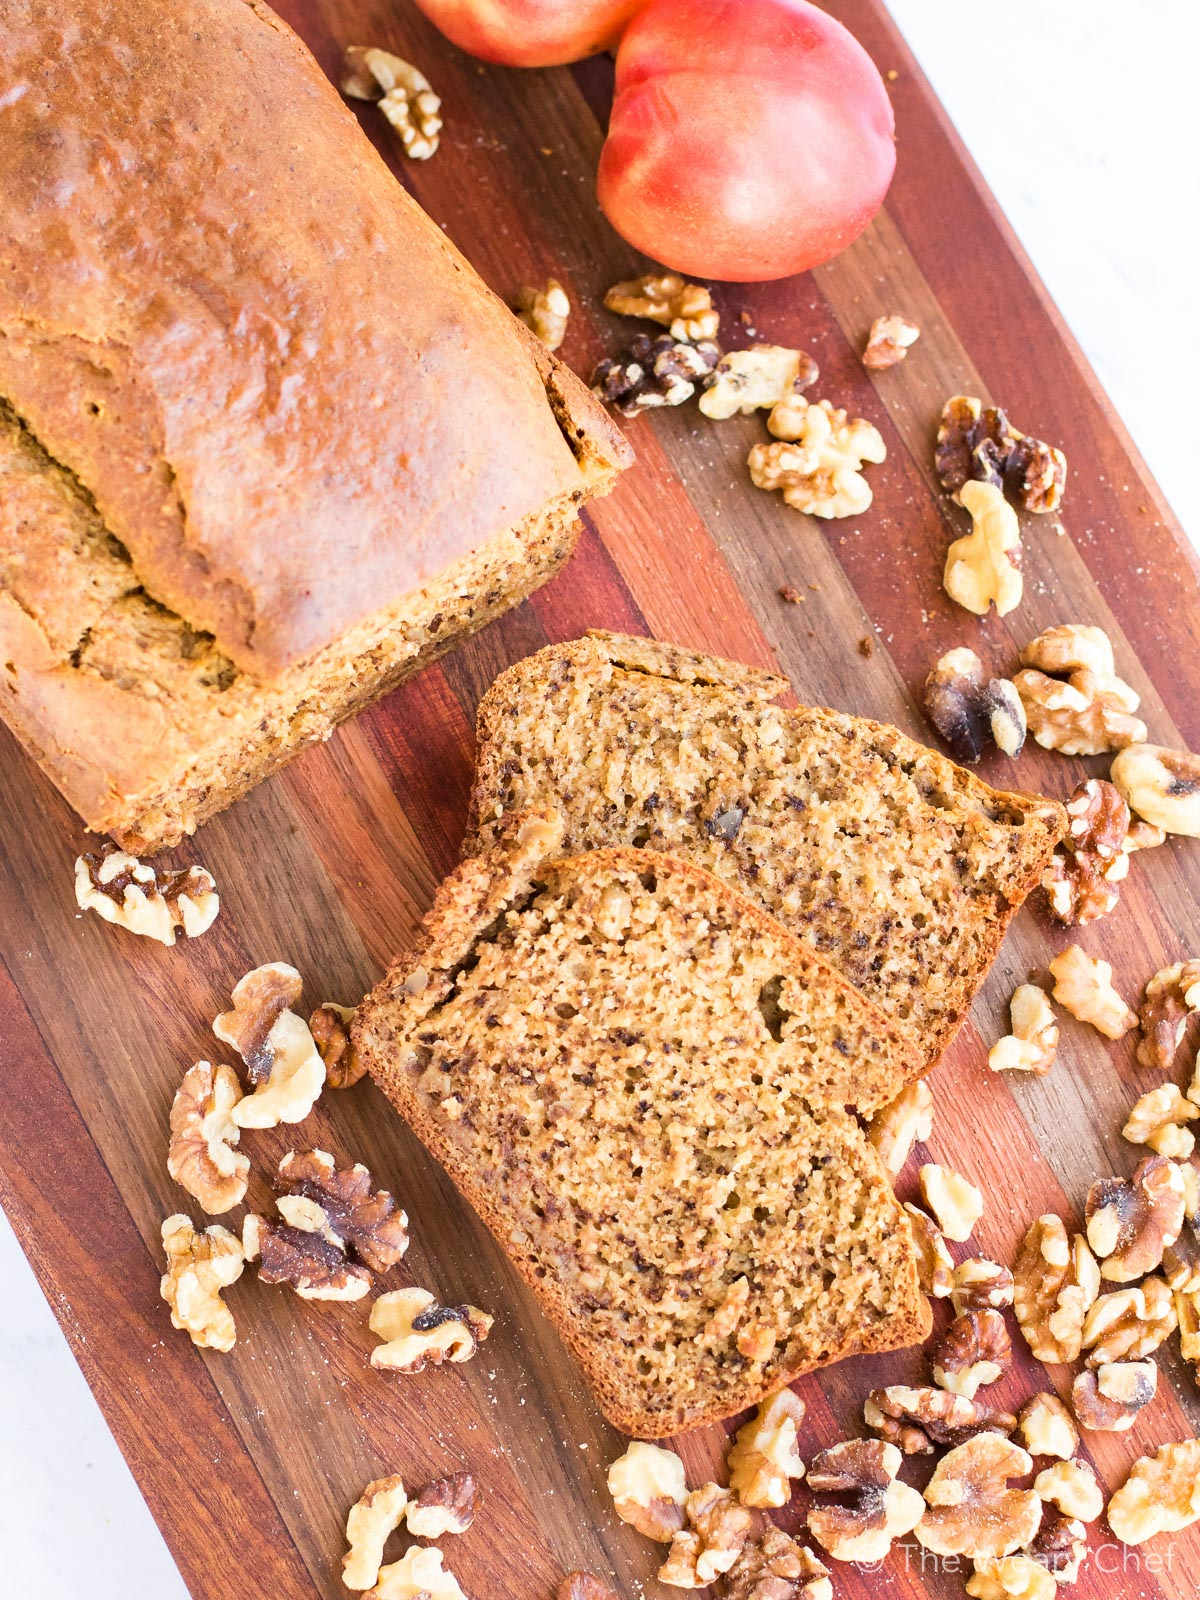 Peach bread with walnuts is a perfect breakfast treat!